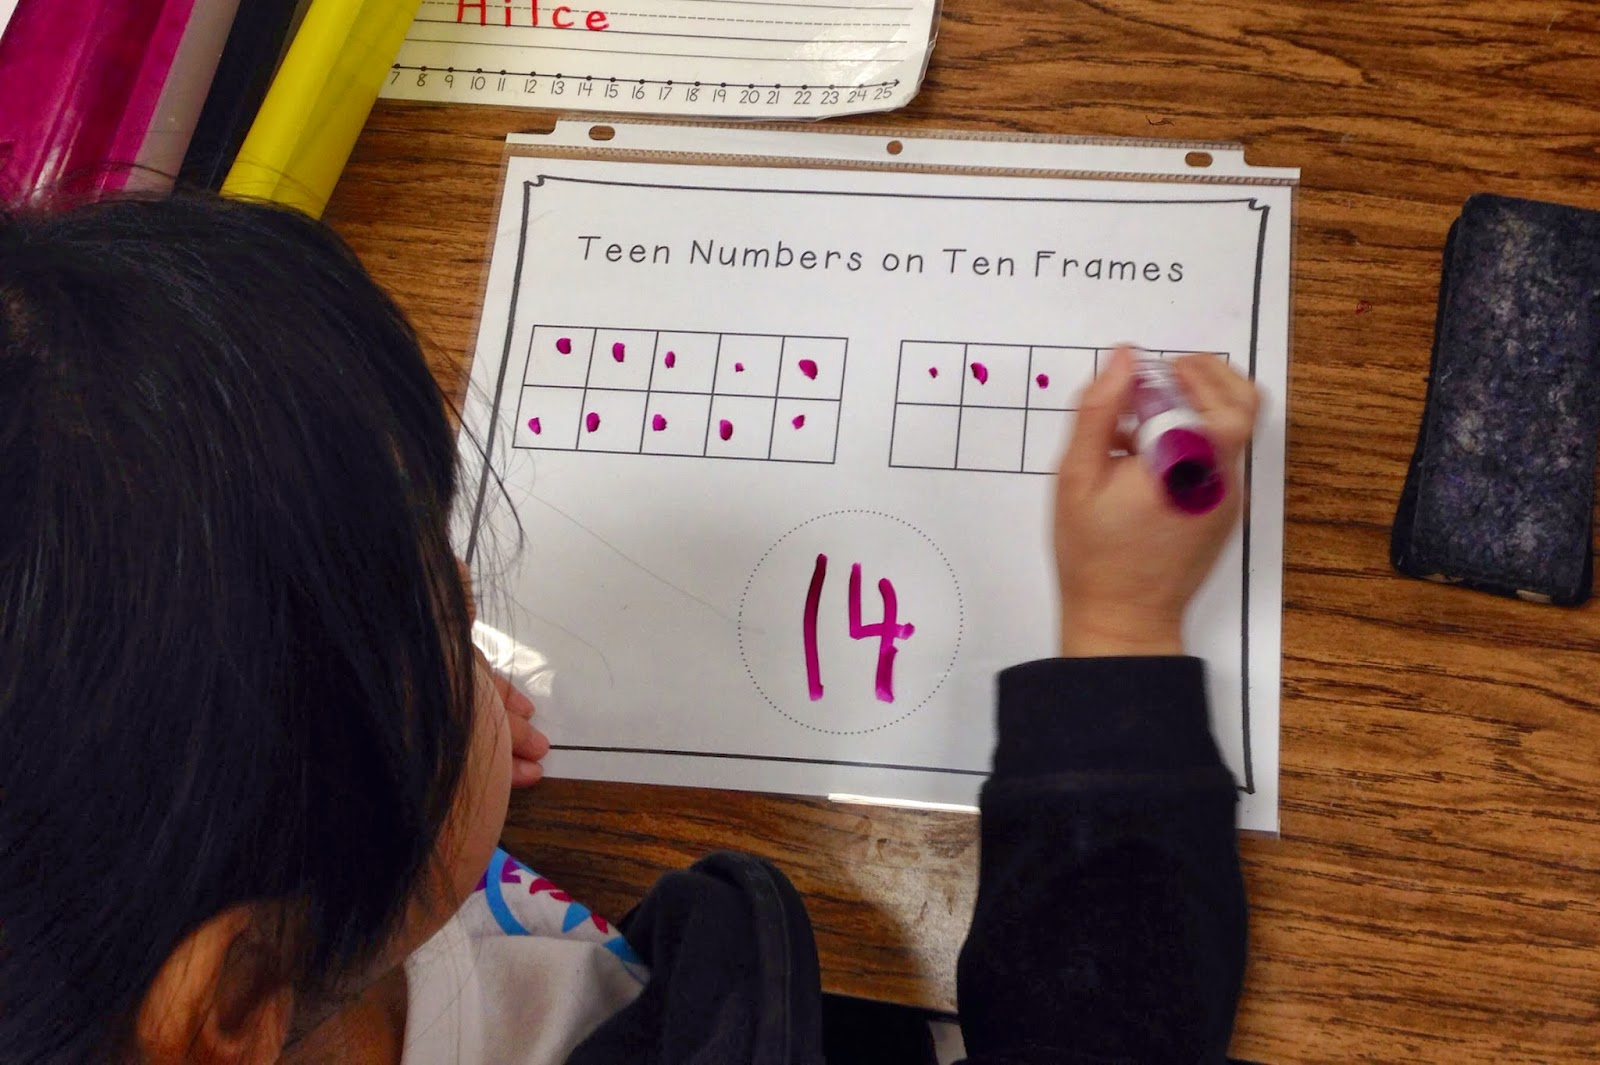 we learned how to show teen numbers on ten frames we learned that each teen number always has 1 ten frame filled in all the way